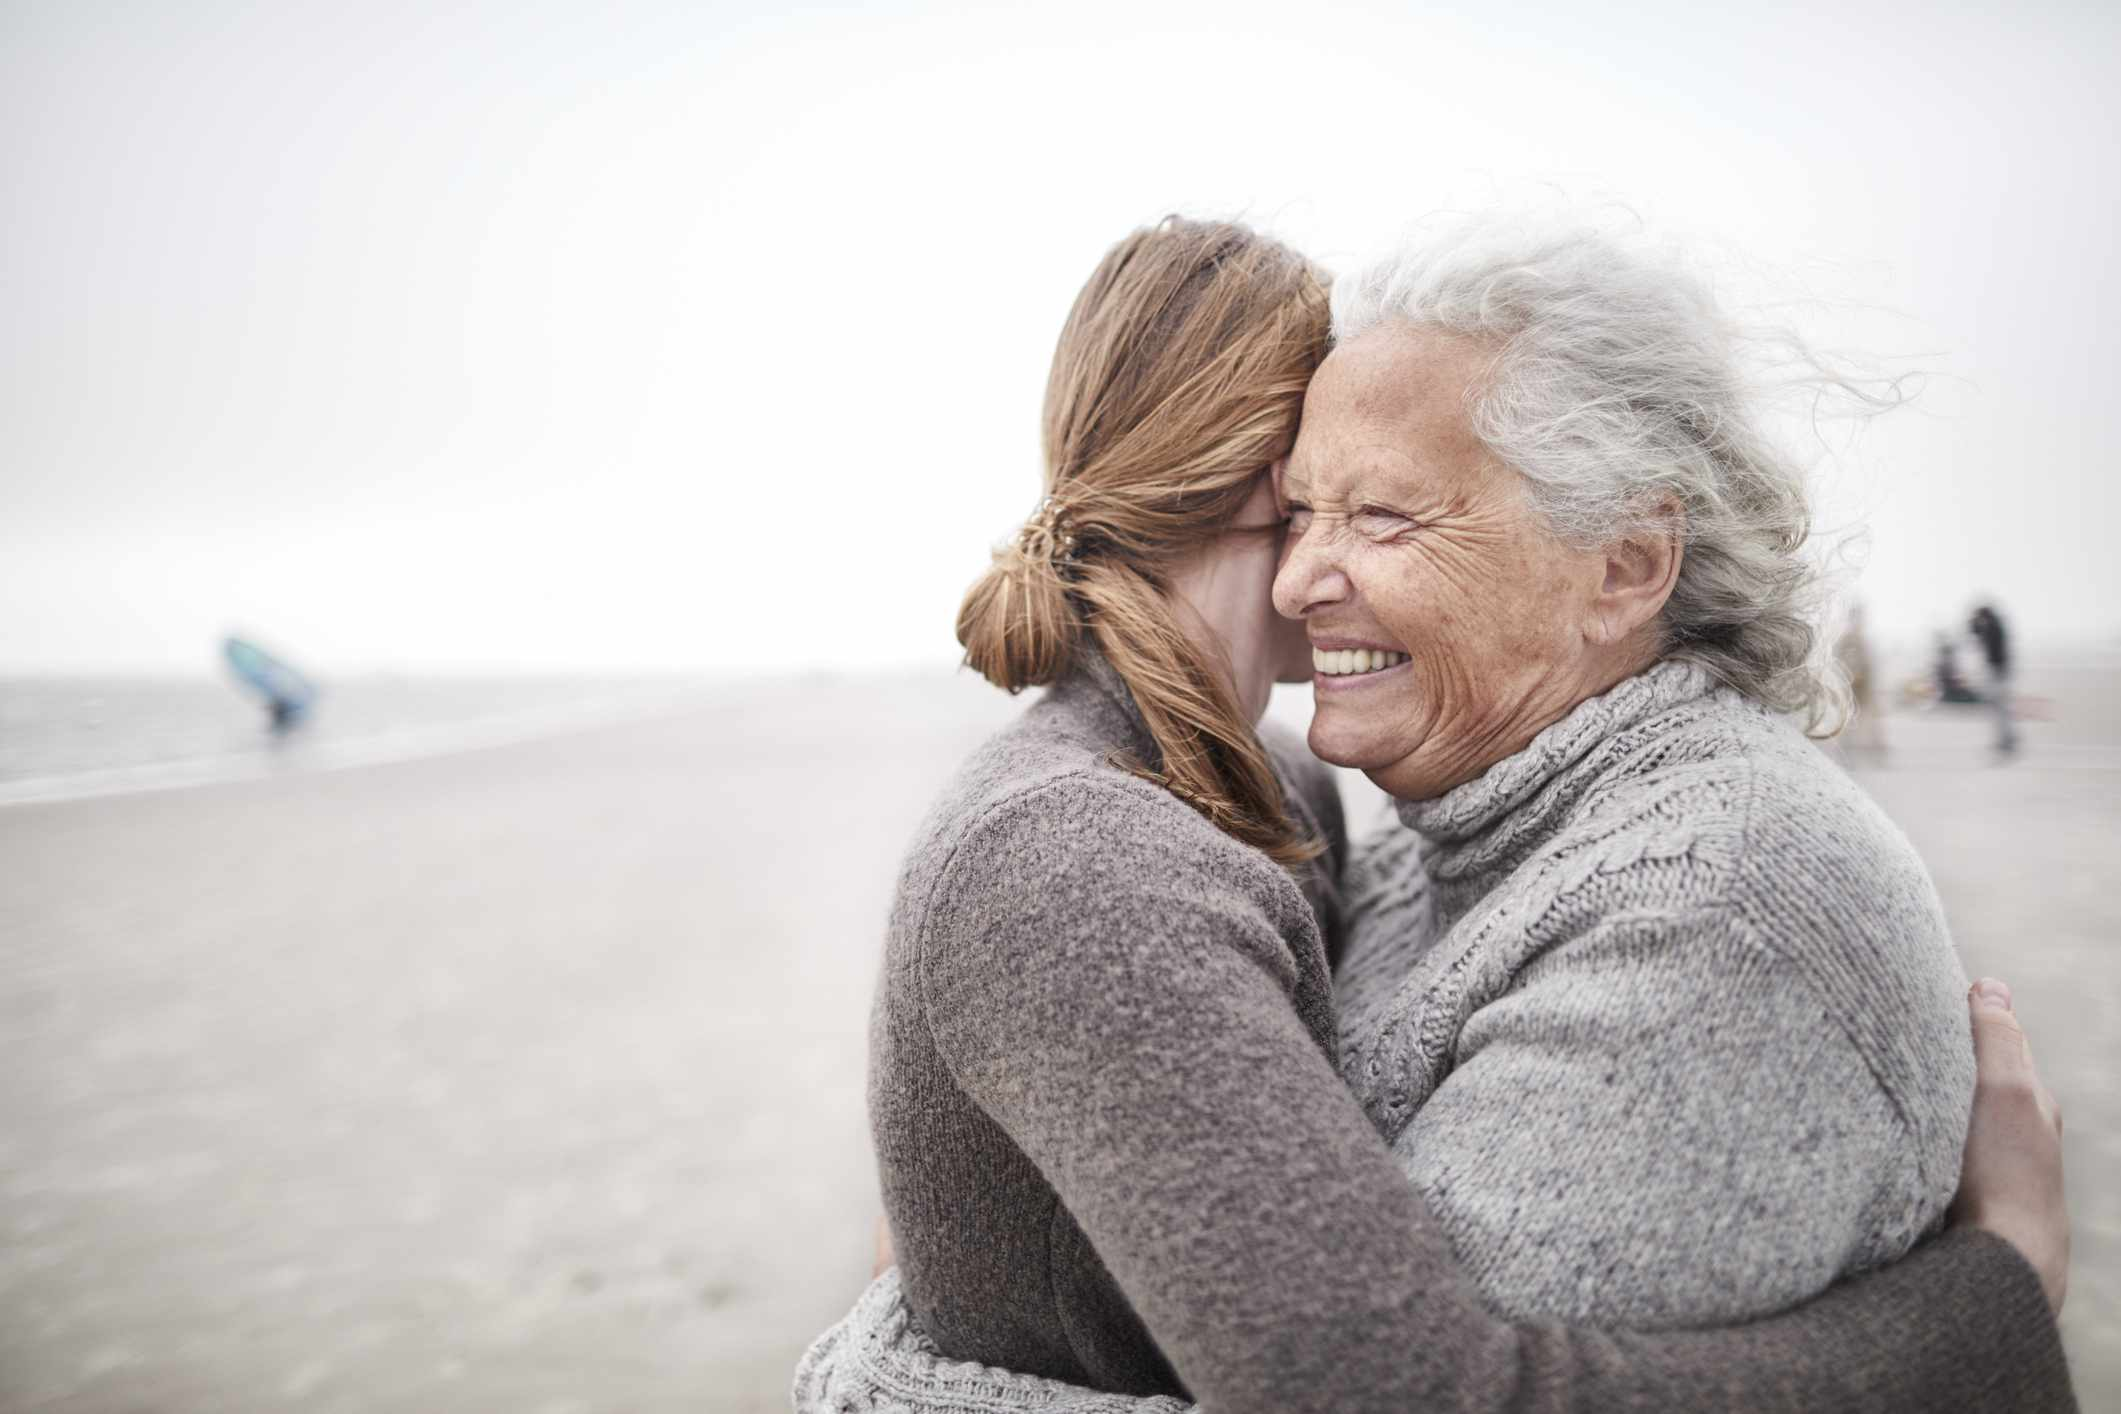 Affectionate grandmother and granddaughter hugging on the beach